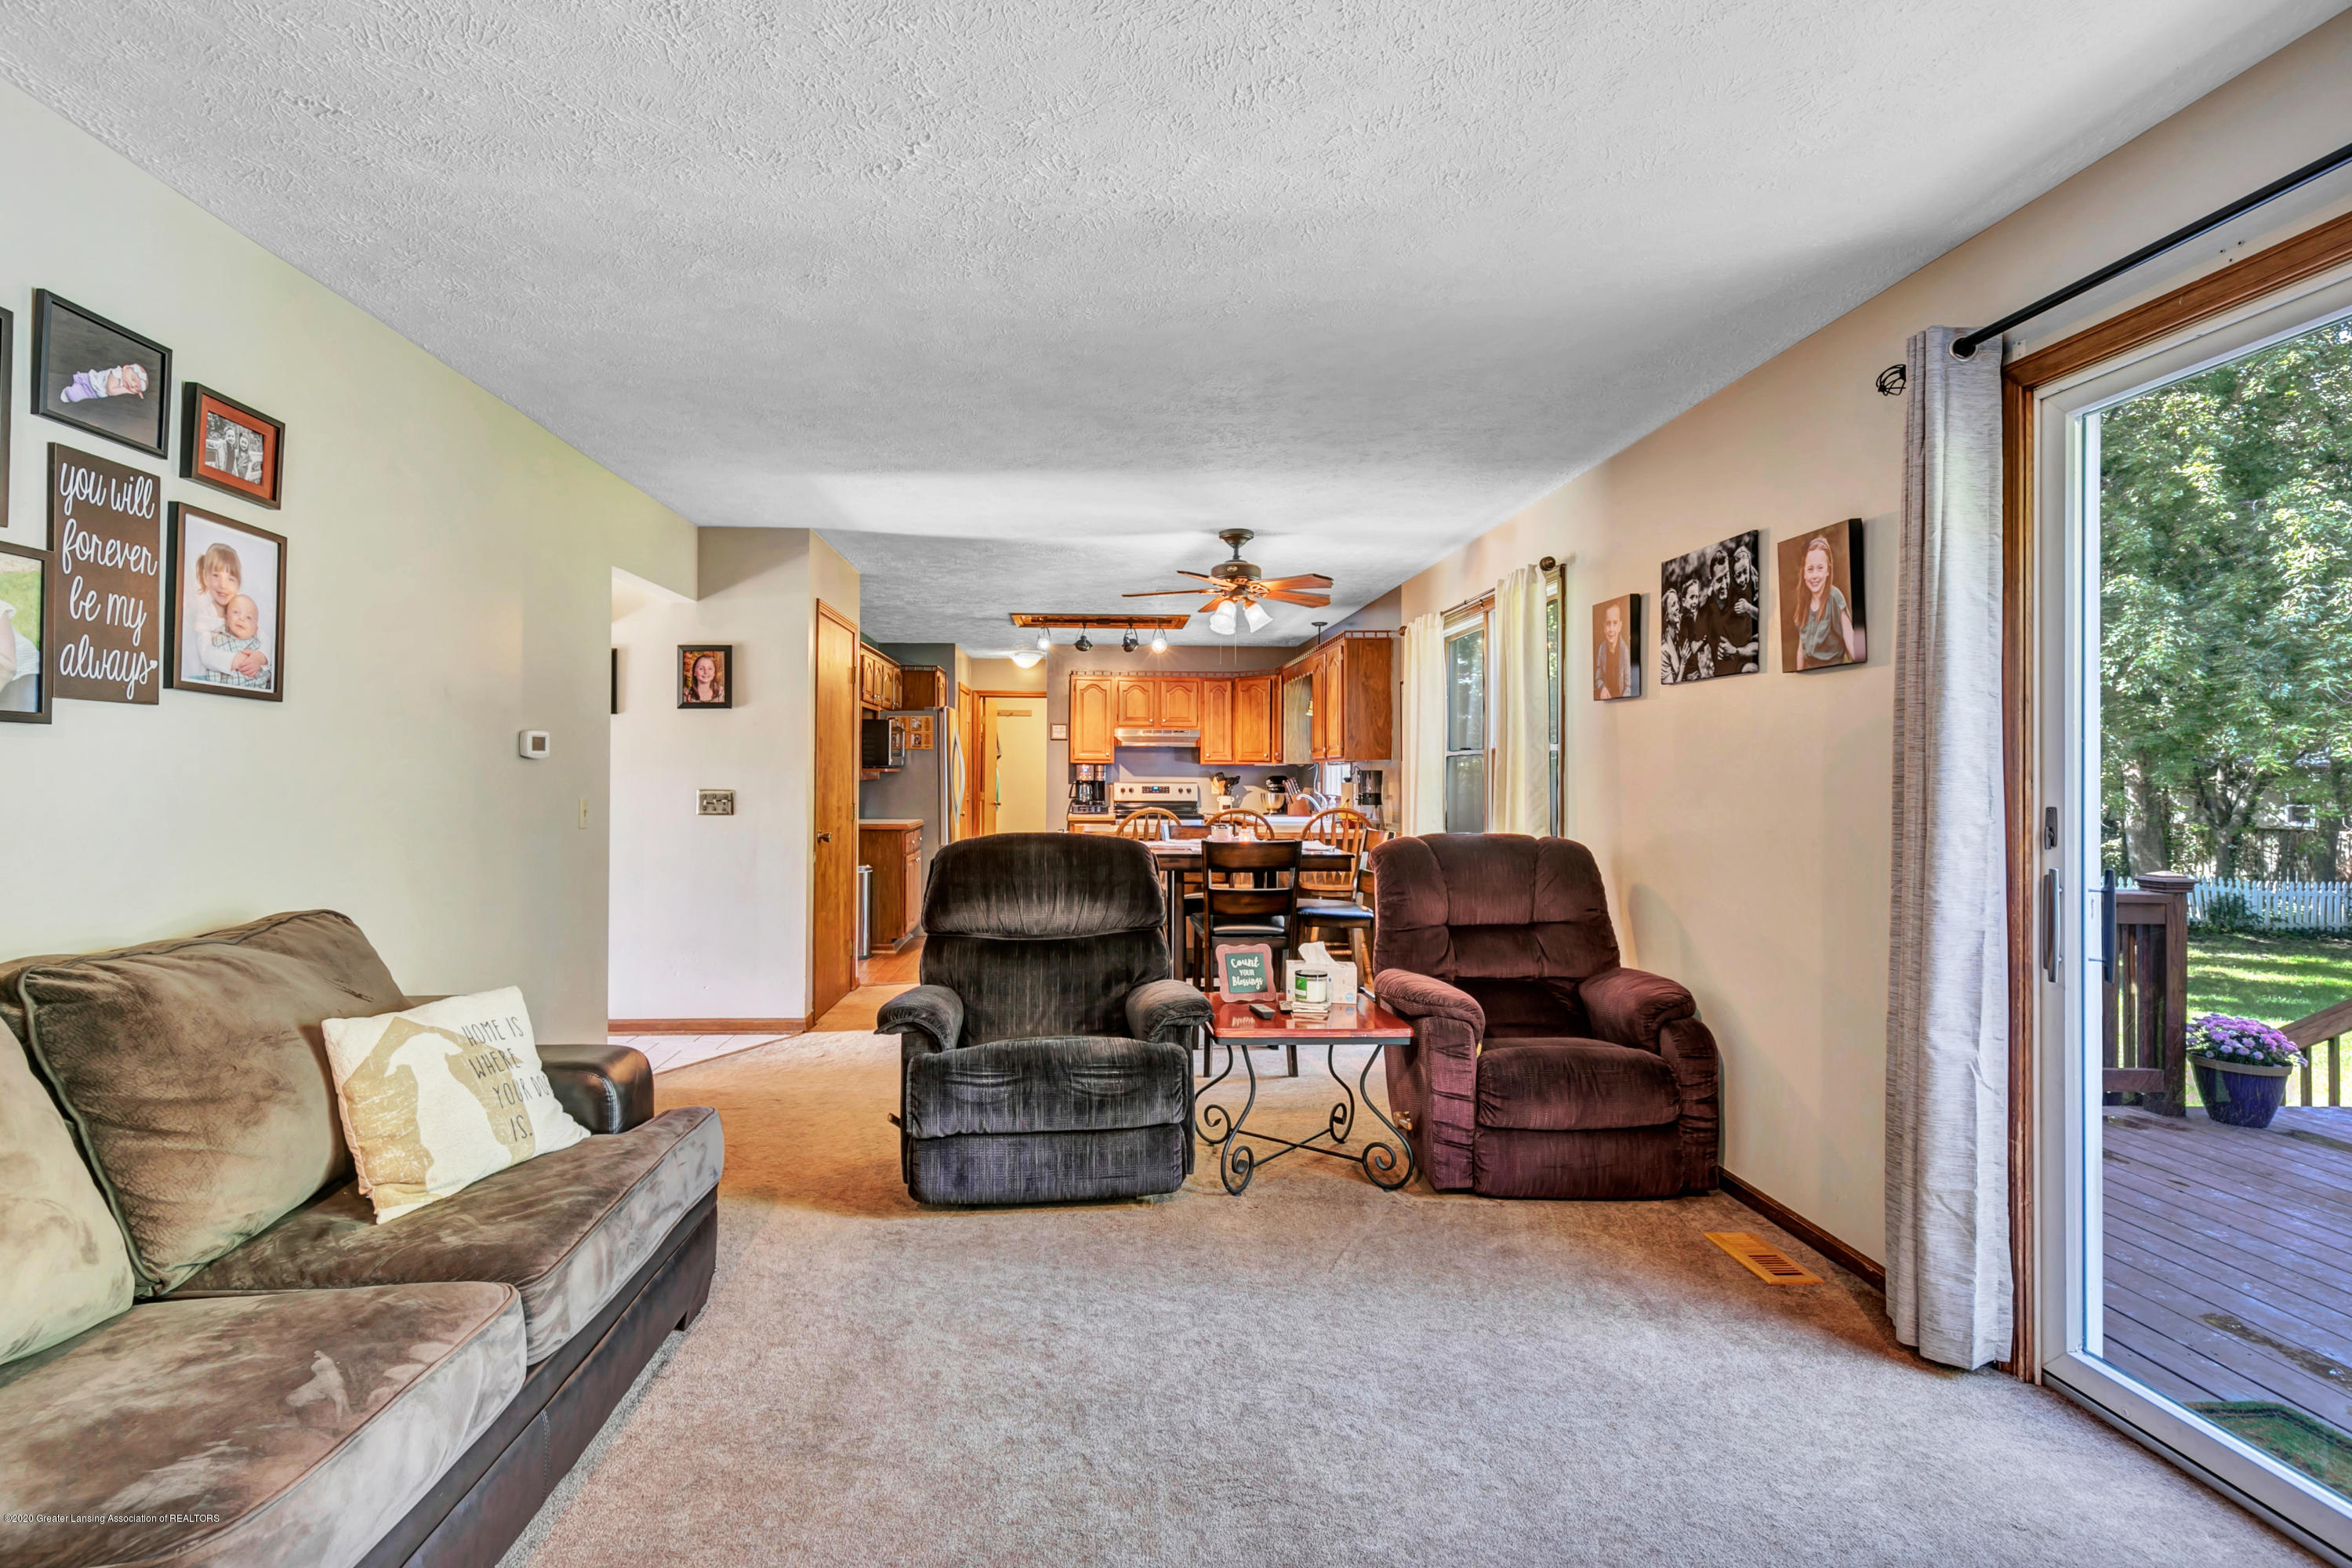 1301 Timber Creek Dr - 9I3A2504 - 8